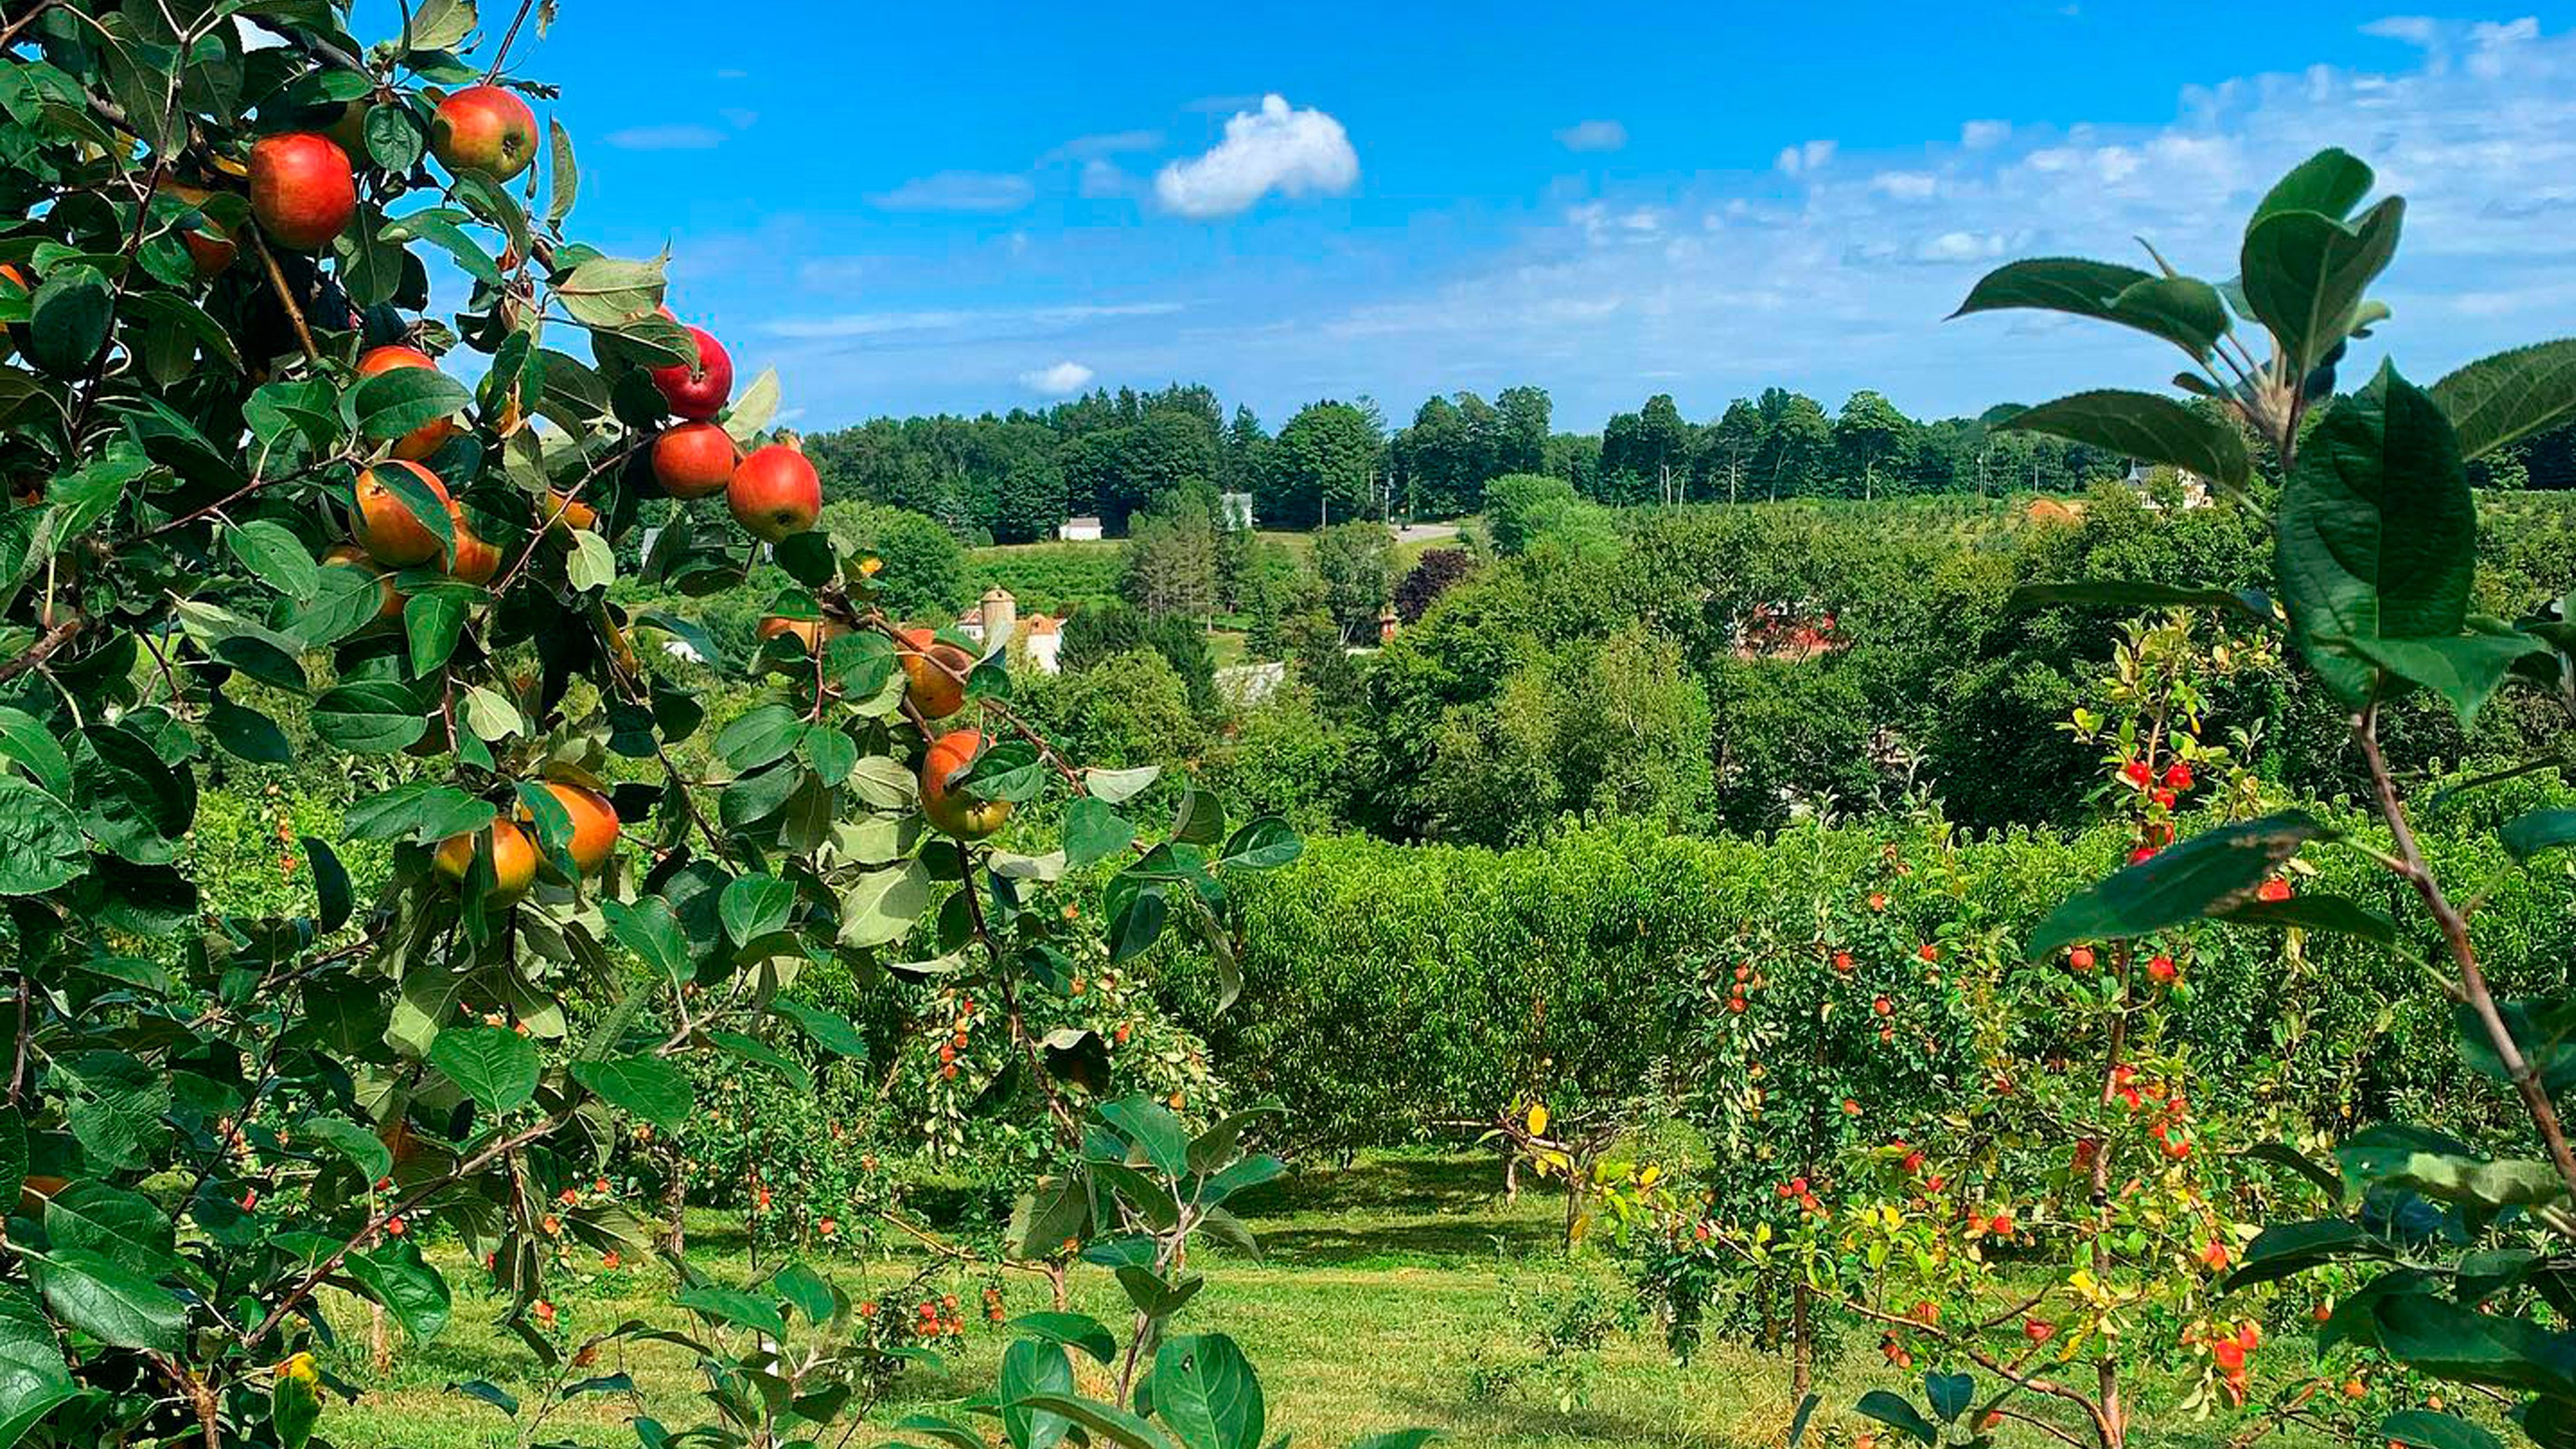 View of the orchards at March Farm in Bethlehem, Connecticut